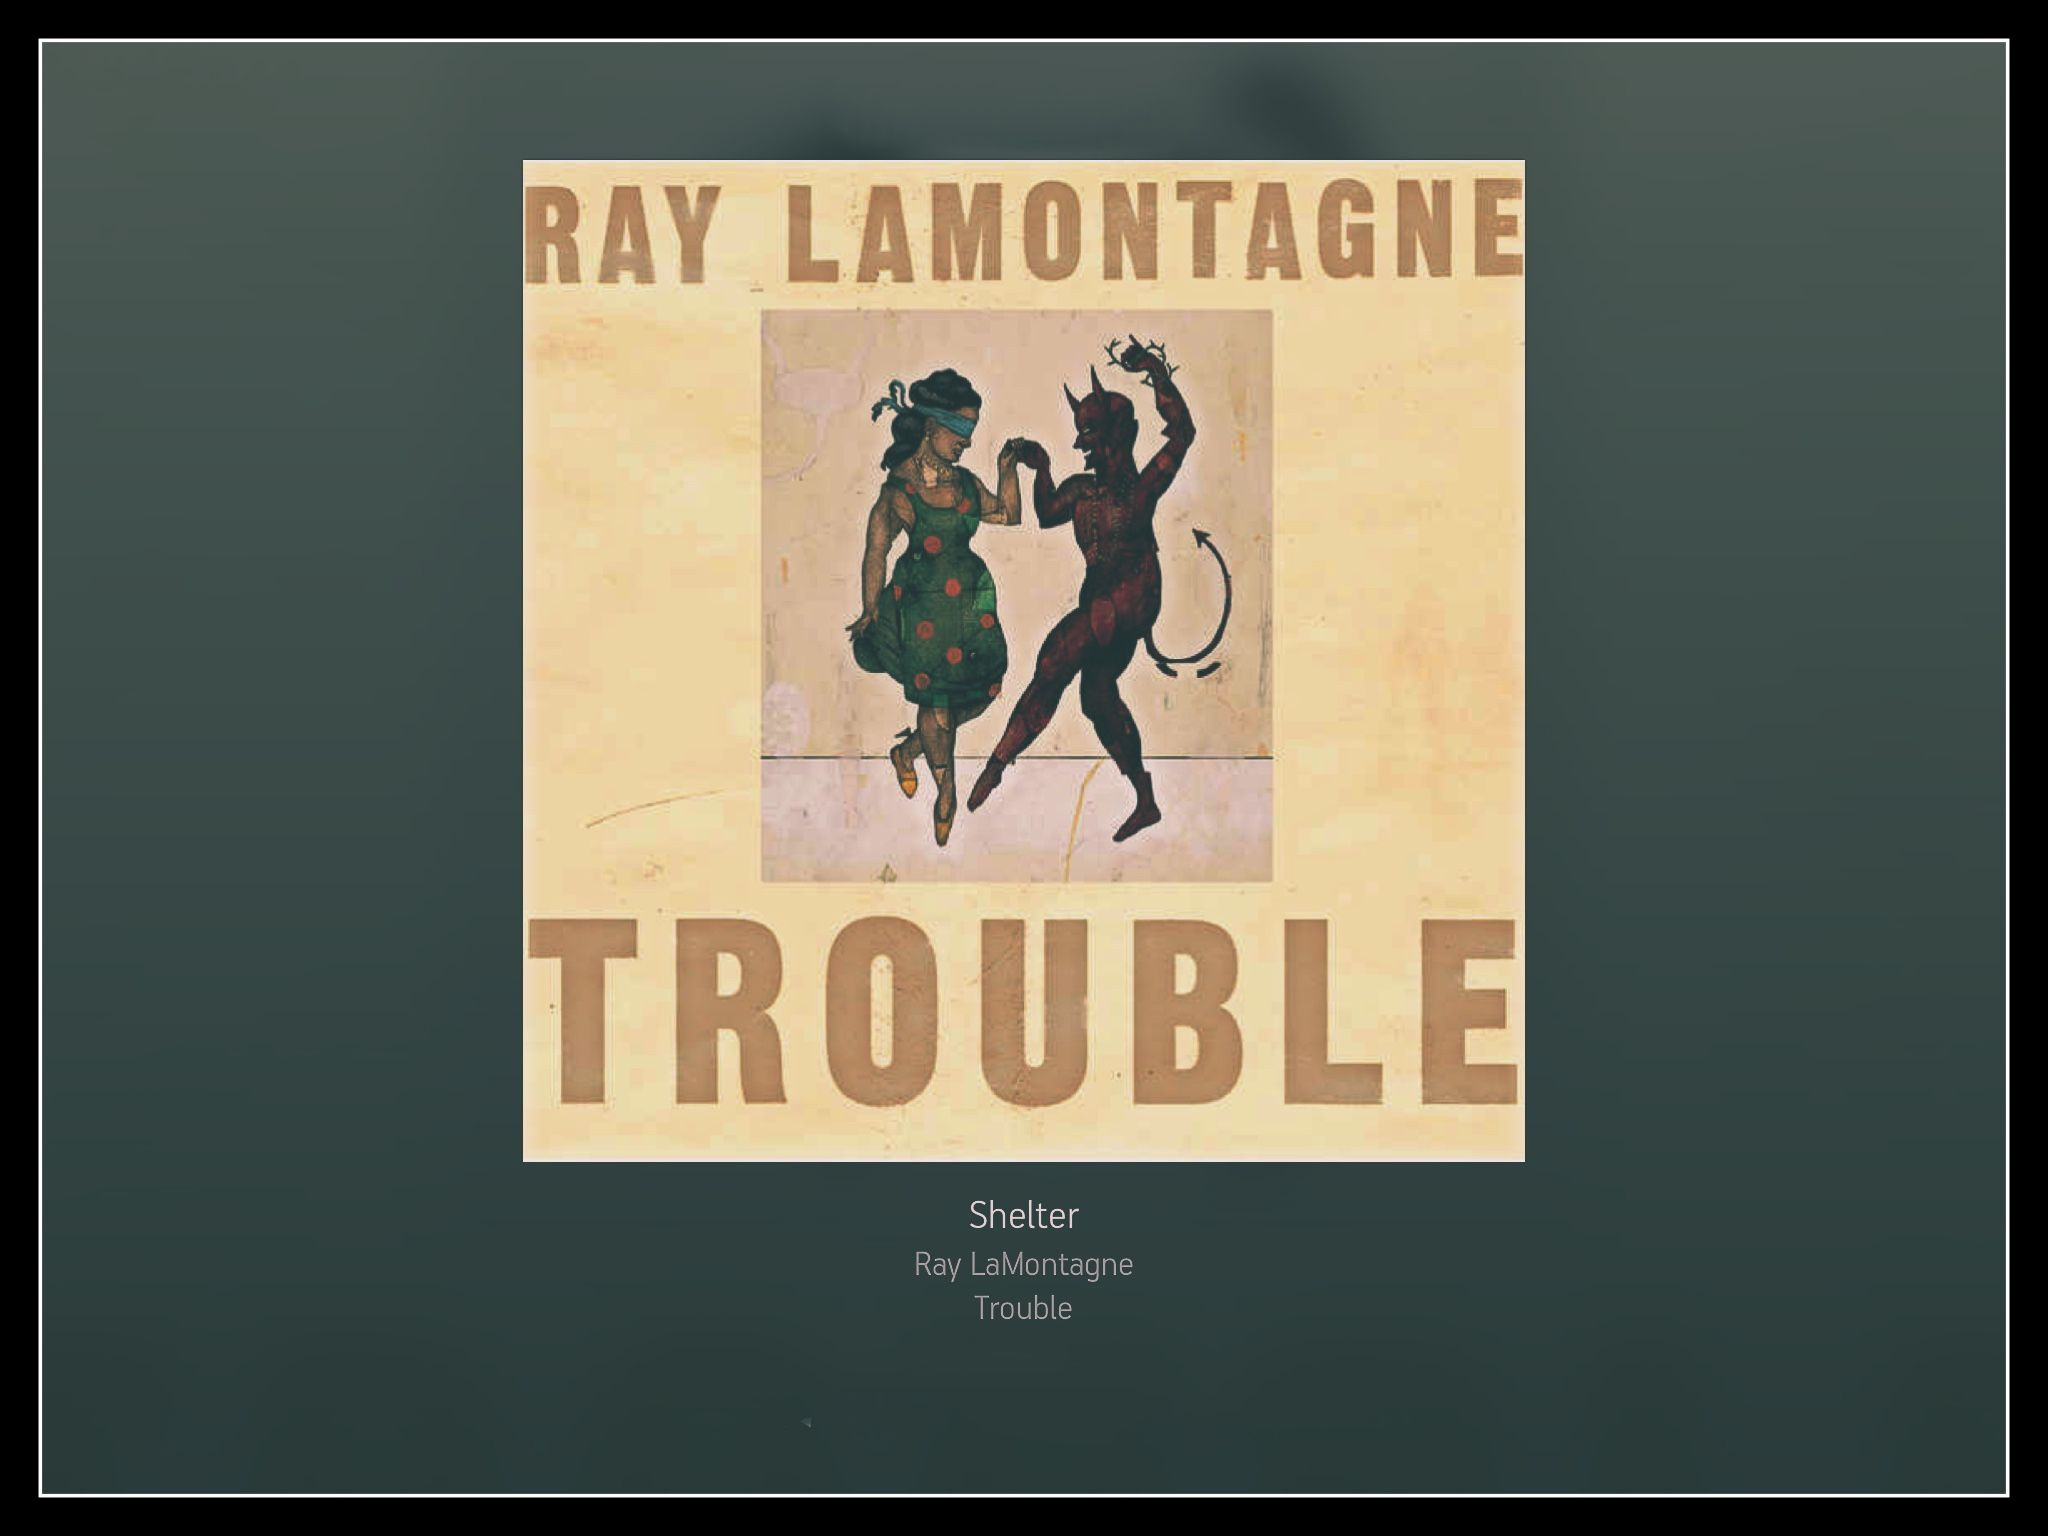 Pin by F***k P*****st on Artists Ray lamontagne, Album